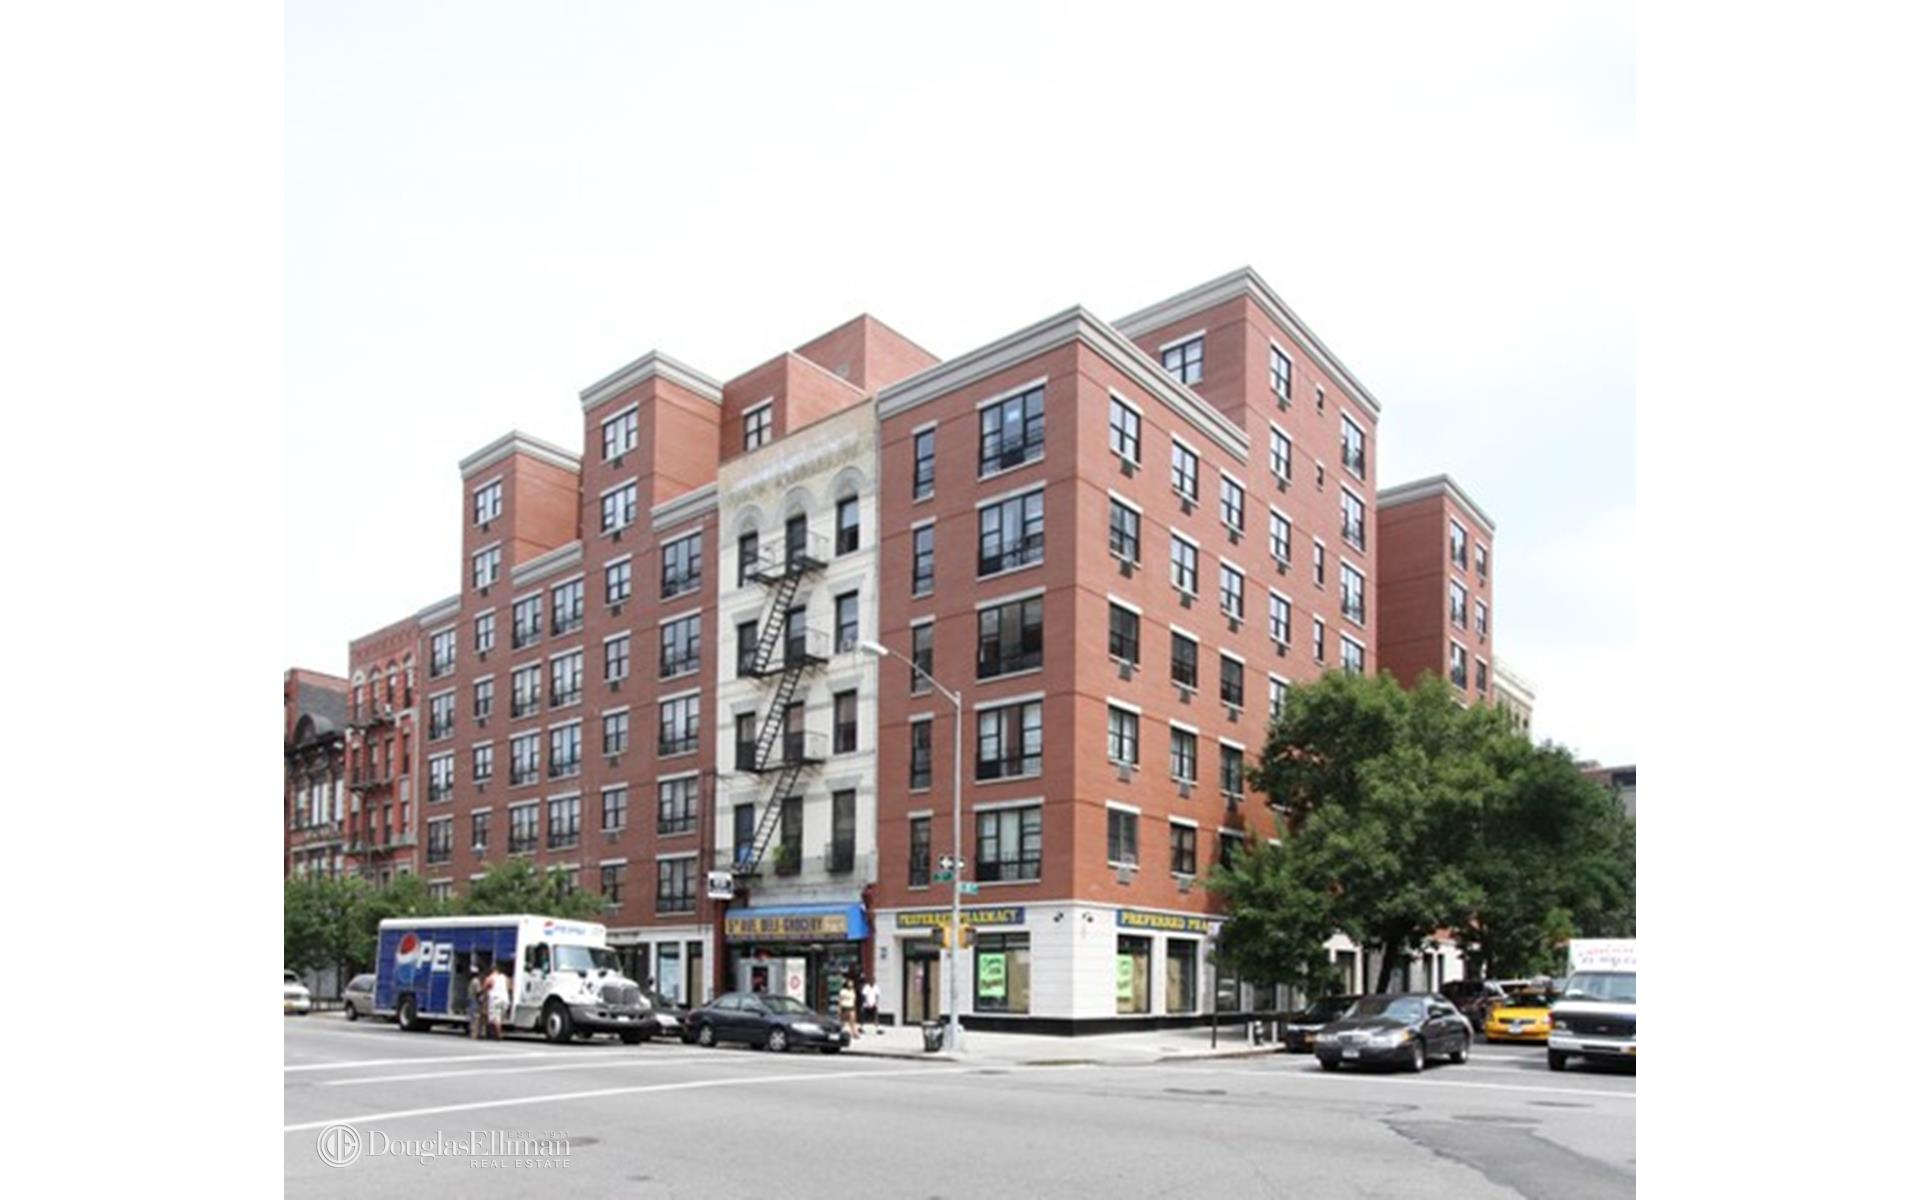 East Harlem 1 Bedroom Rental At 3 E 115 St New York Ny 10029 8b 1950 Apartable